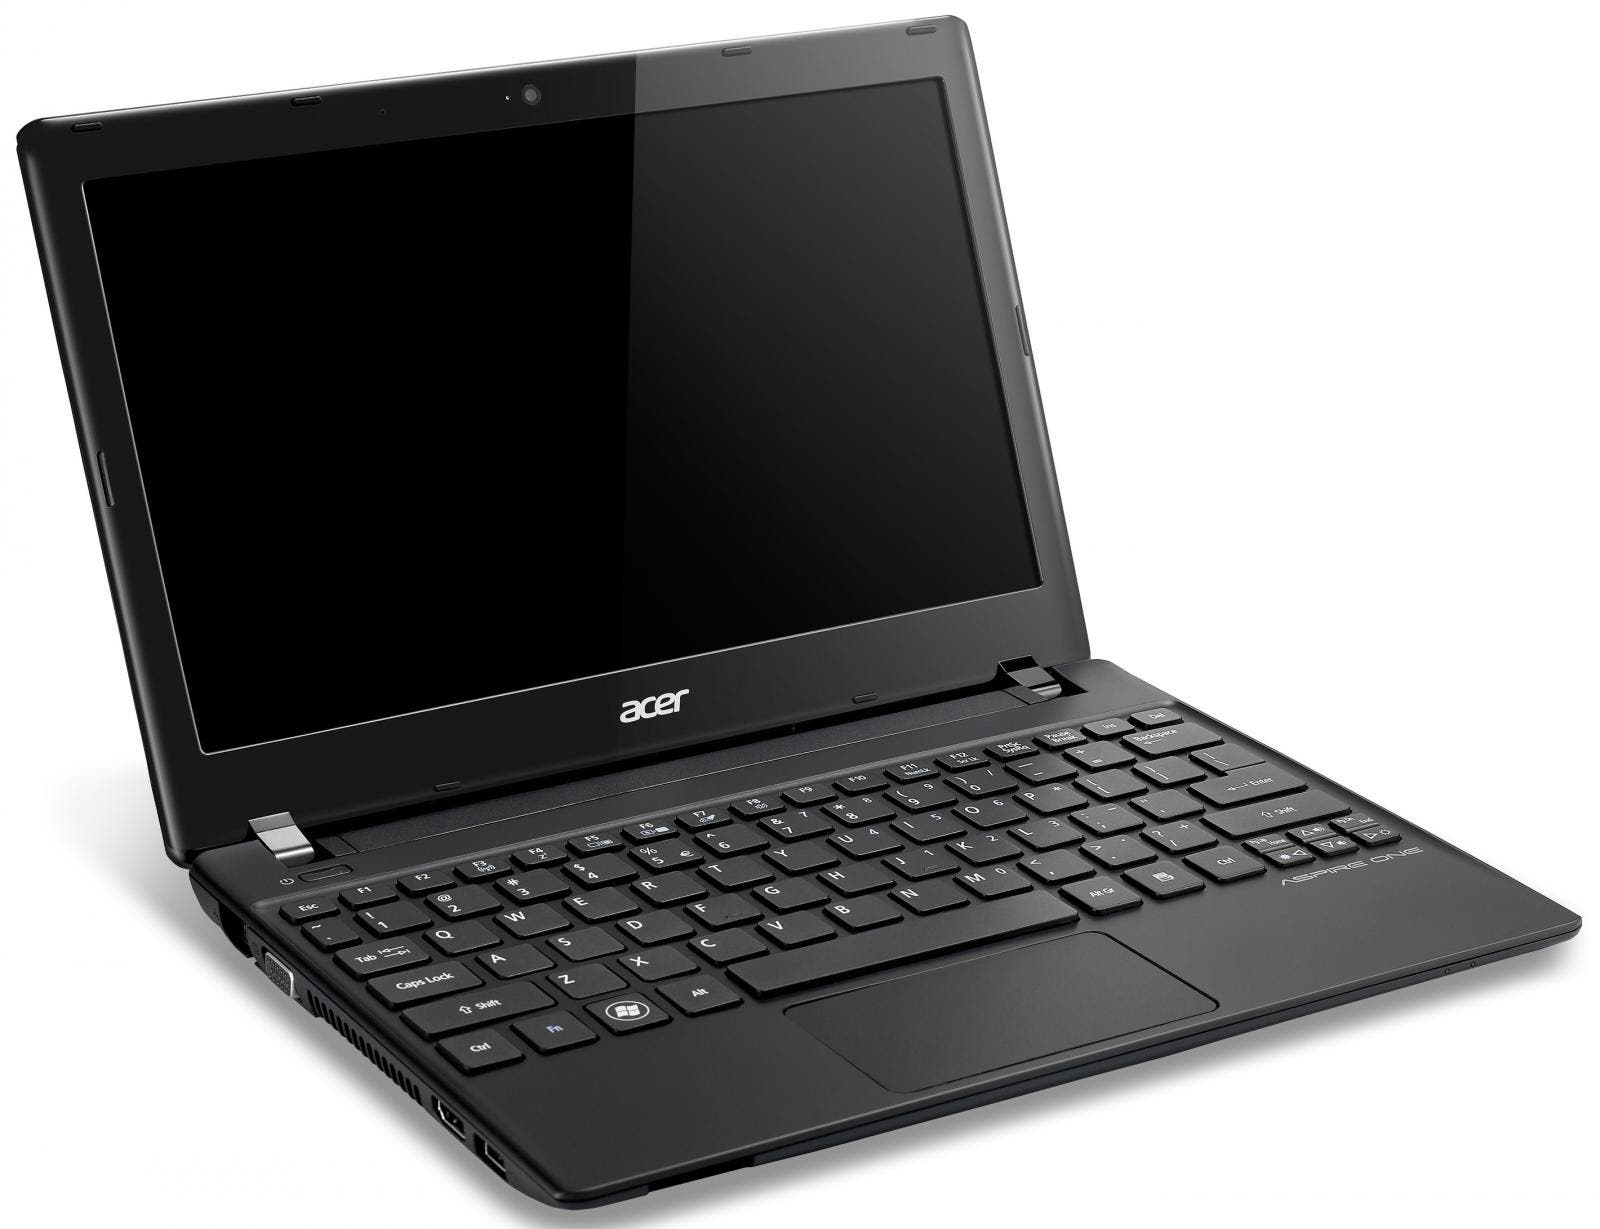 acer_aspire_one_756_877b1kk_03